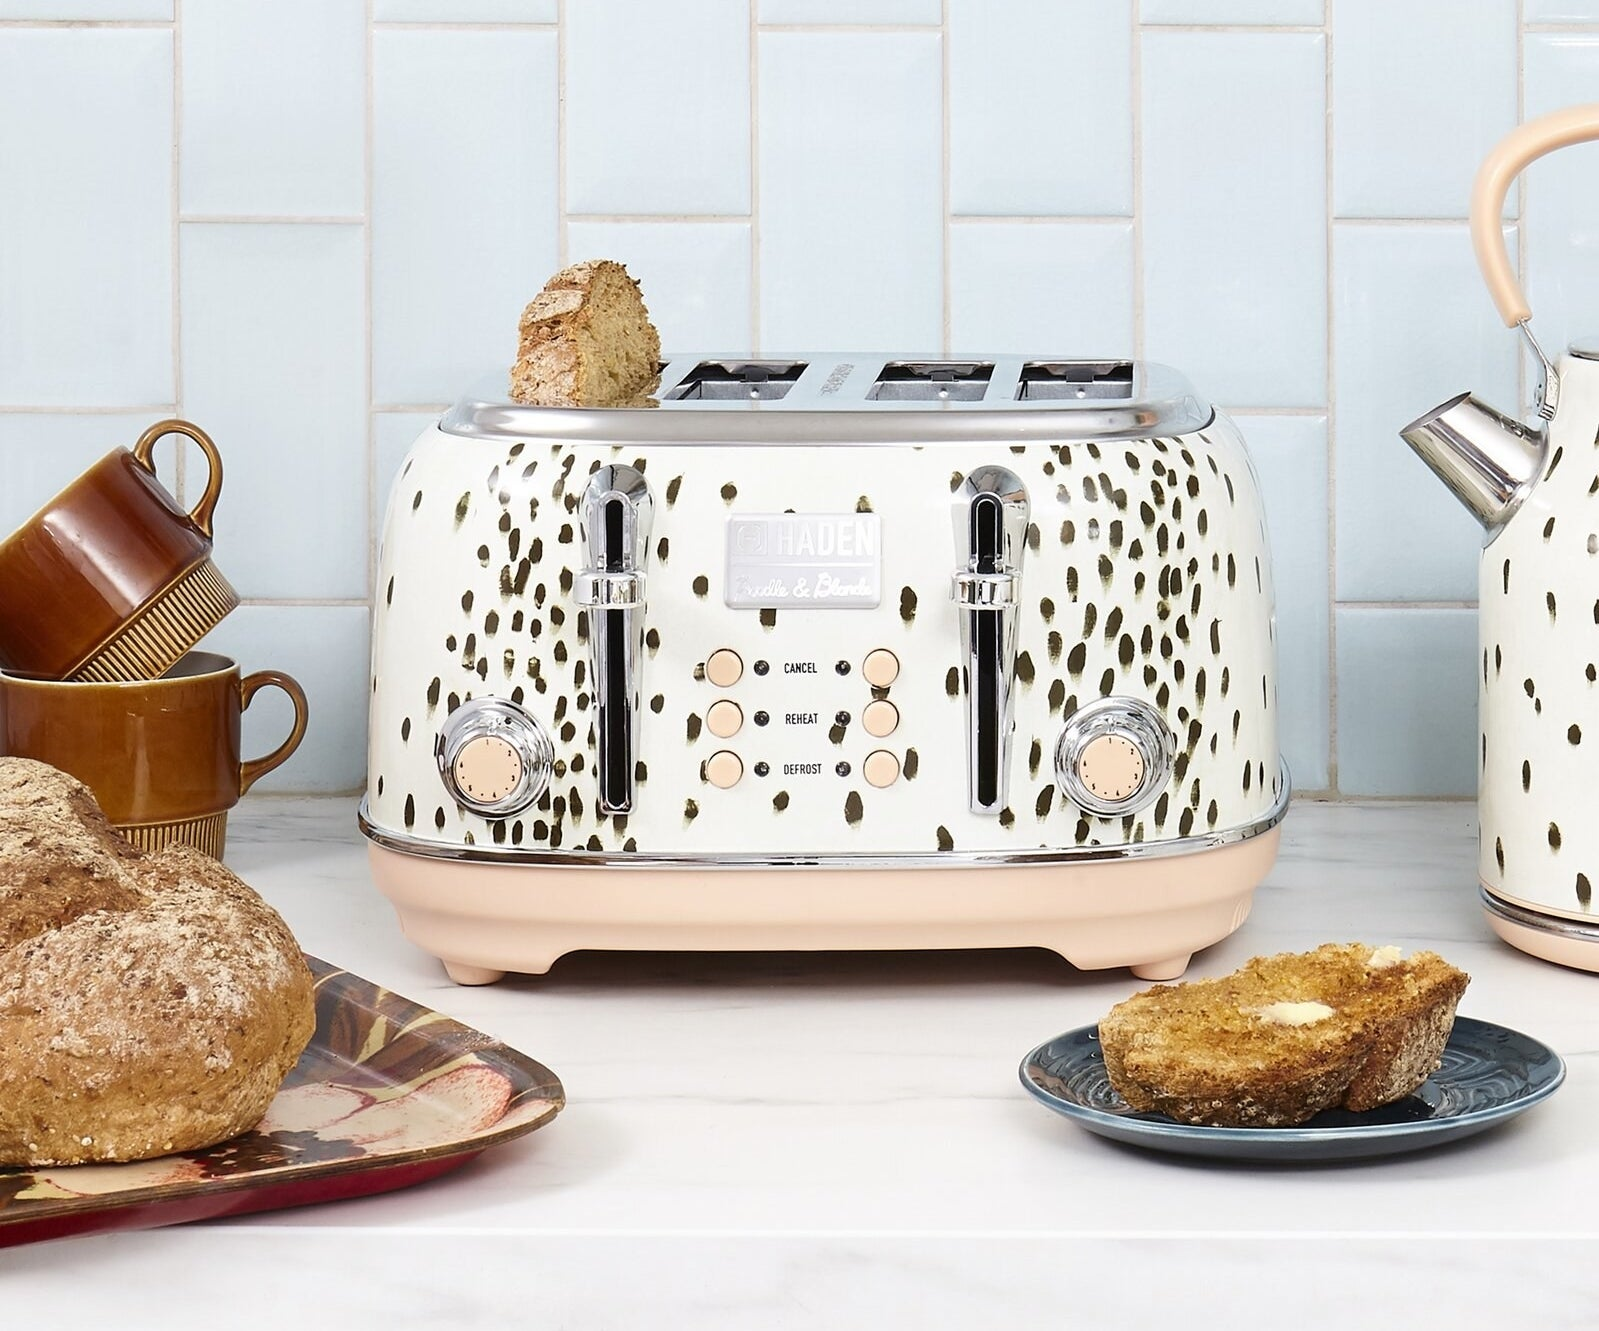 The four-slice toaster which has two dials, six buttons, and a black spotted finish